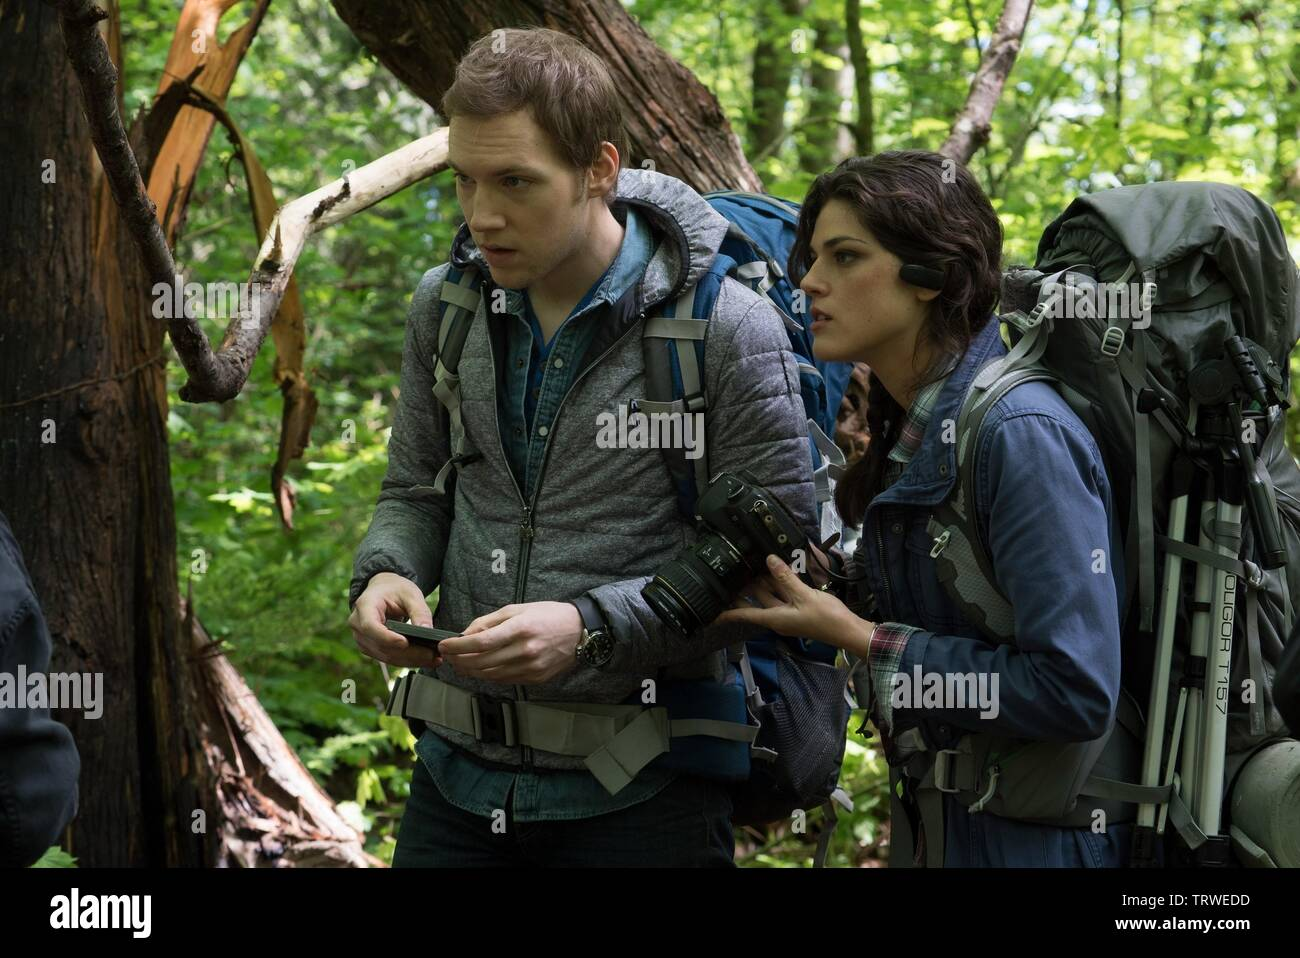 CALLIE HERNANDEZ and JAMES ALLEN MCCUNE in BLAIR WITCH (2016). Copyright: Editorial use only. No merchandising or book covers. This is a publicly distributed handout. Access rights only, no license of copyright provided. Only to be reproduced in conjunction with promotion of this film. Credit: LIONSGATE/ROOM 101/SNOOT ENT/VERTIGO ENT. / HELCERMANAS-BENGE, CHRIS / Album - Stock Image